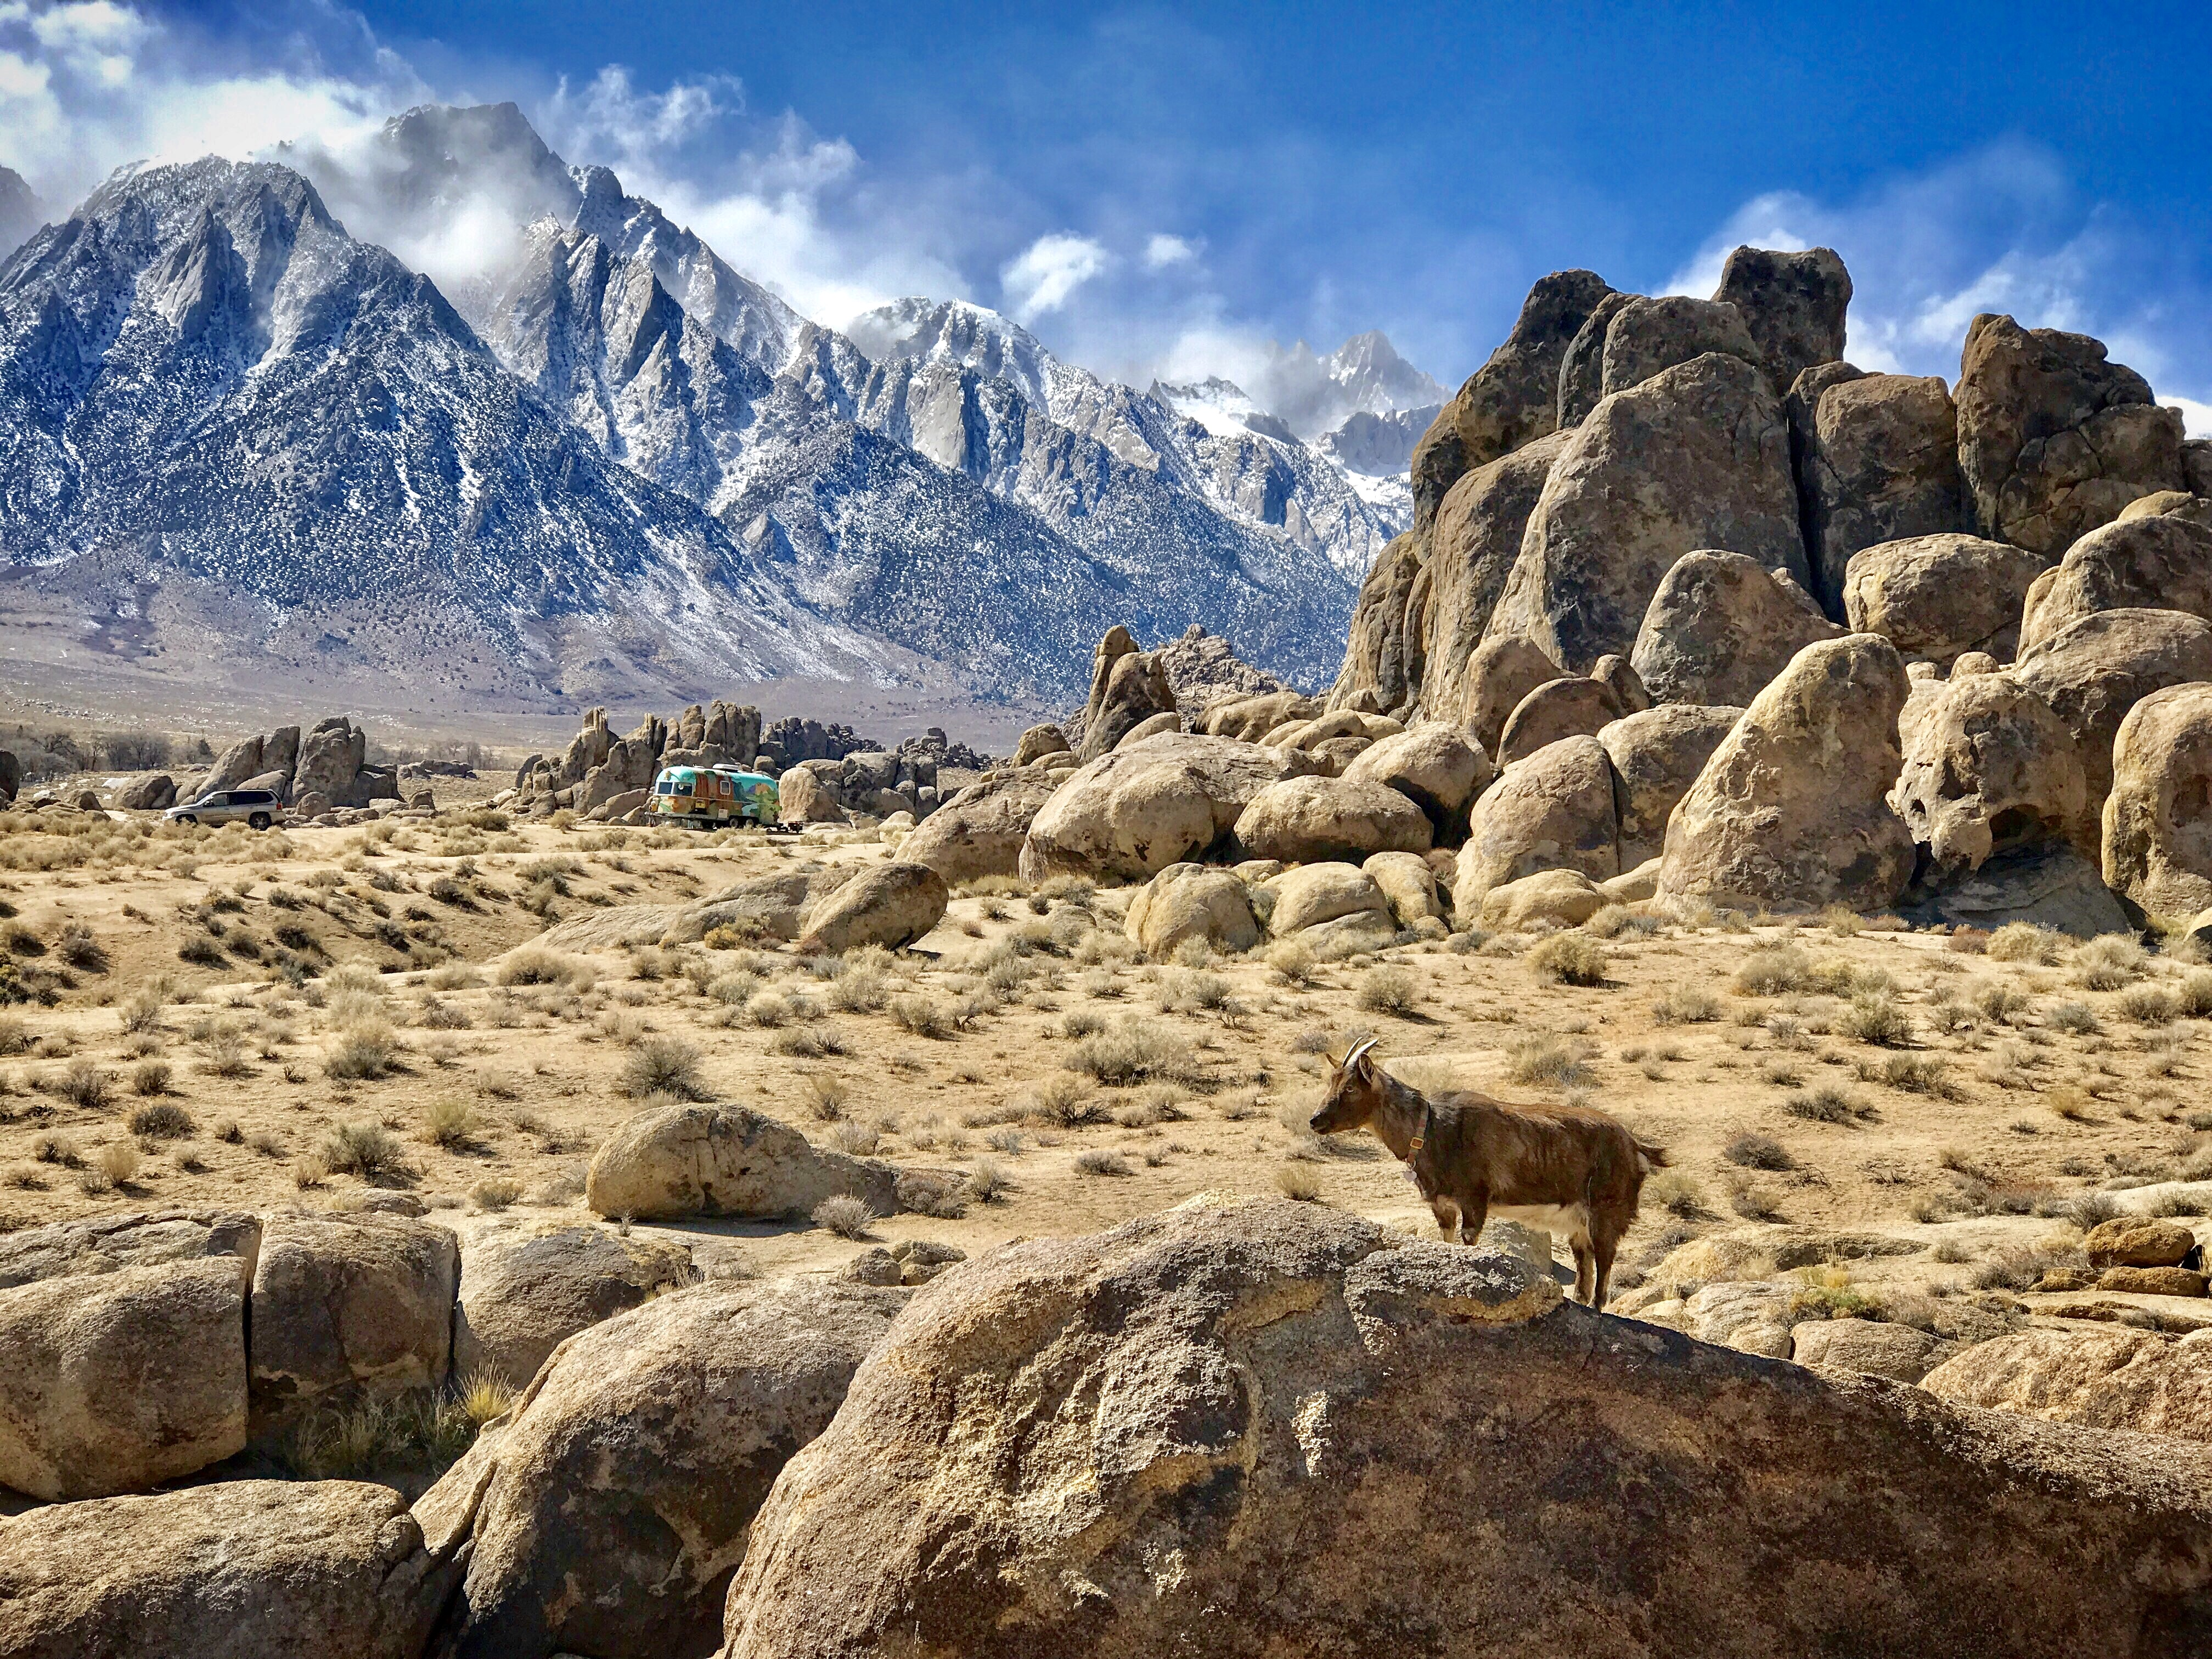 Huge, round boulders lay scattered on a landscape overlooked by high, snowy mountains.